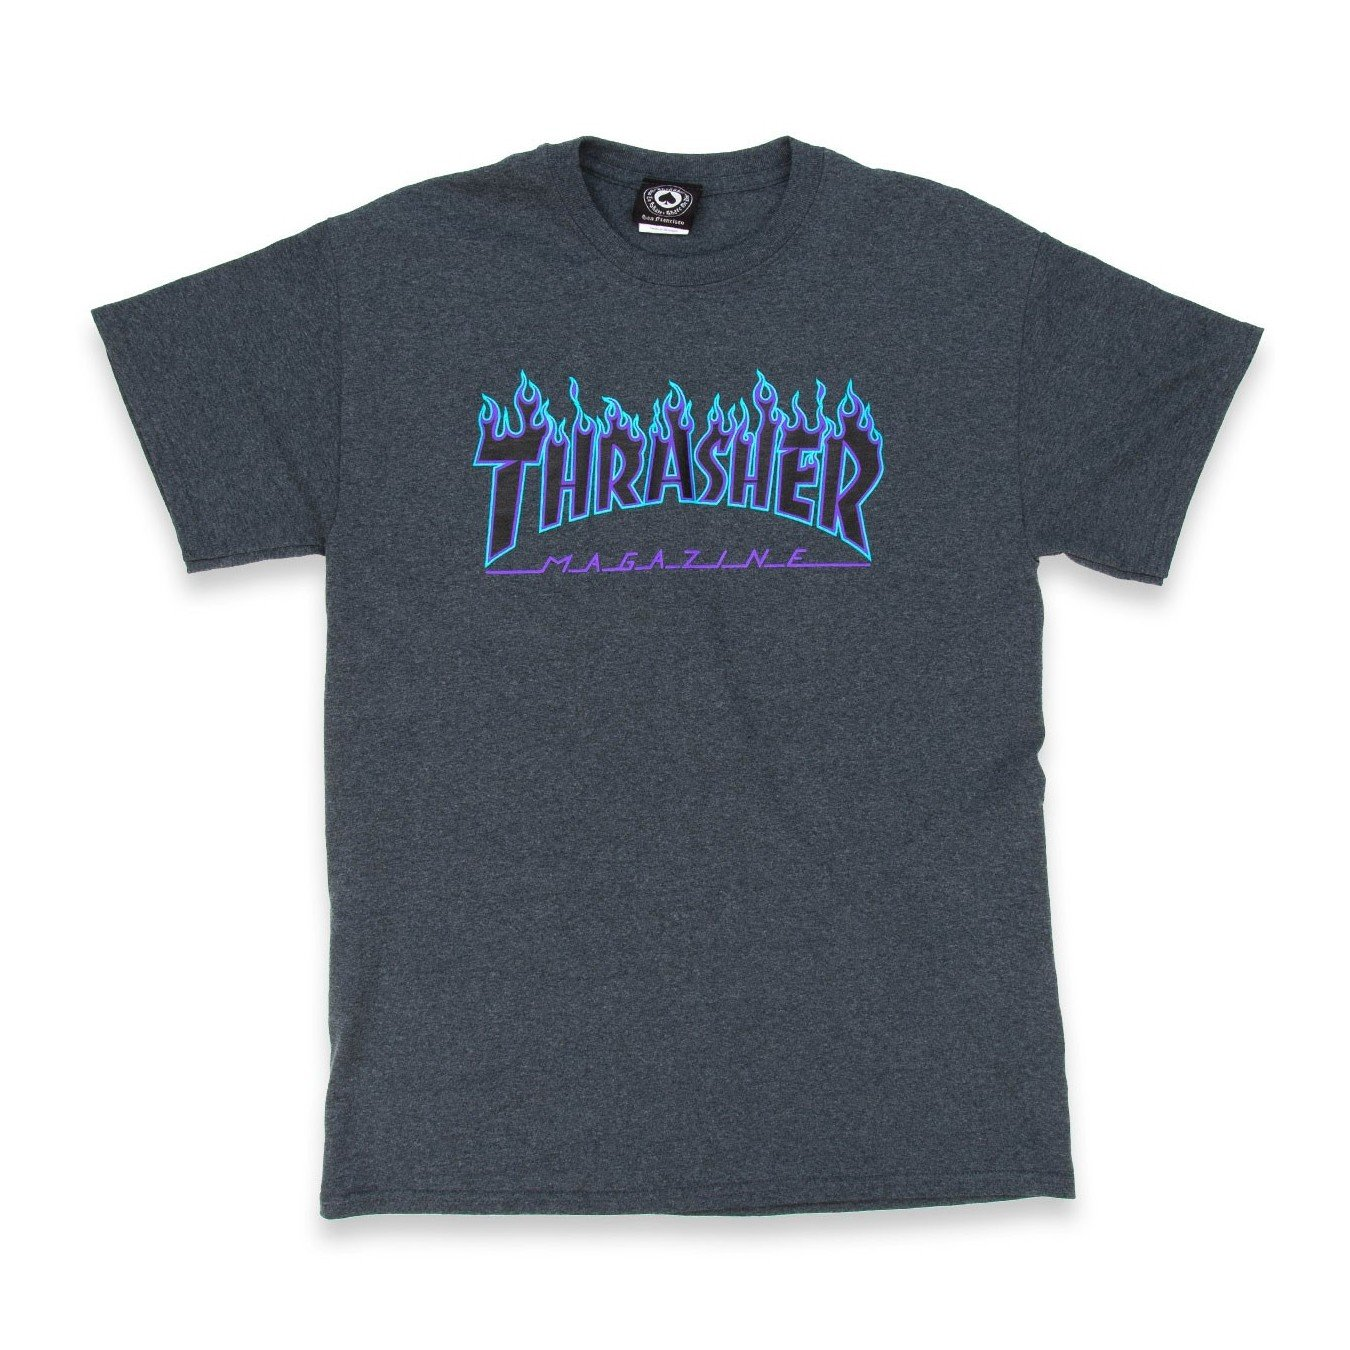 Thrasher Flame T-Shirt (Small, Dark Heather)